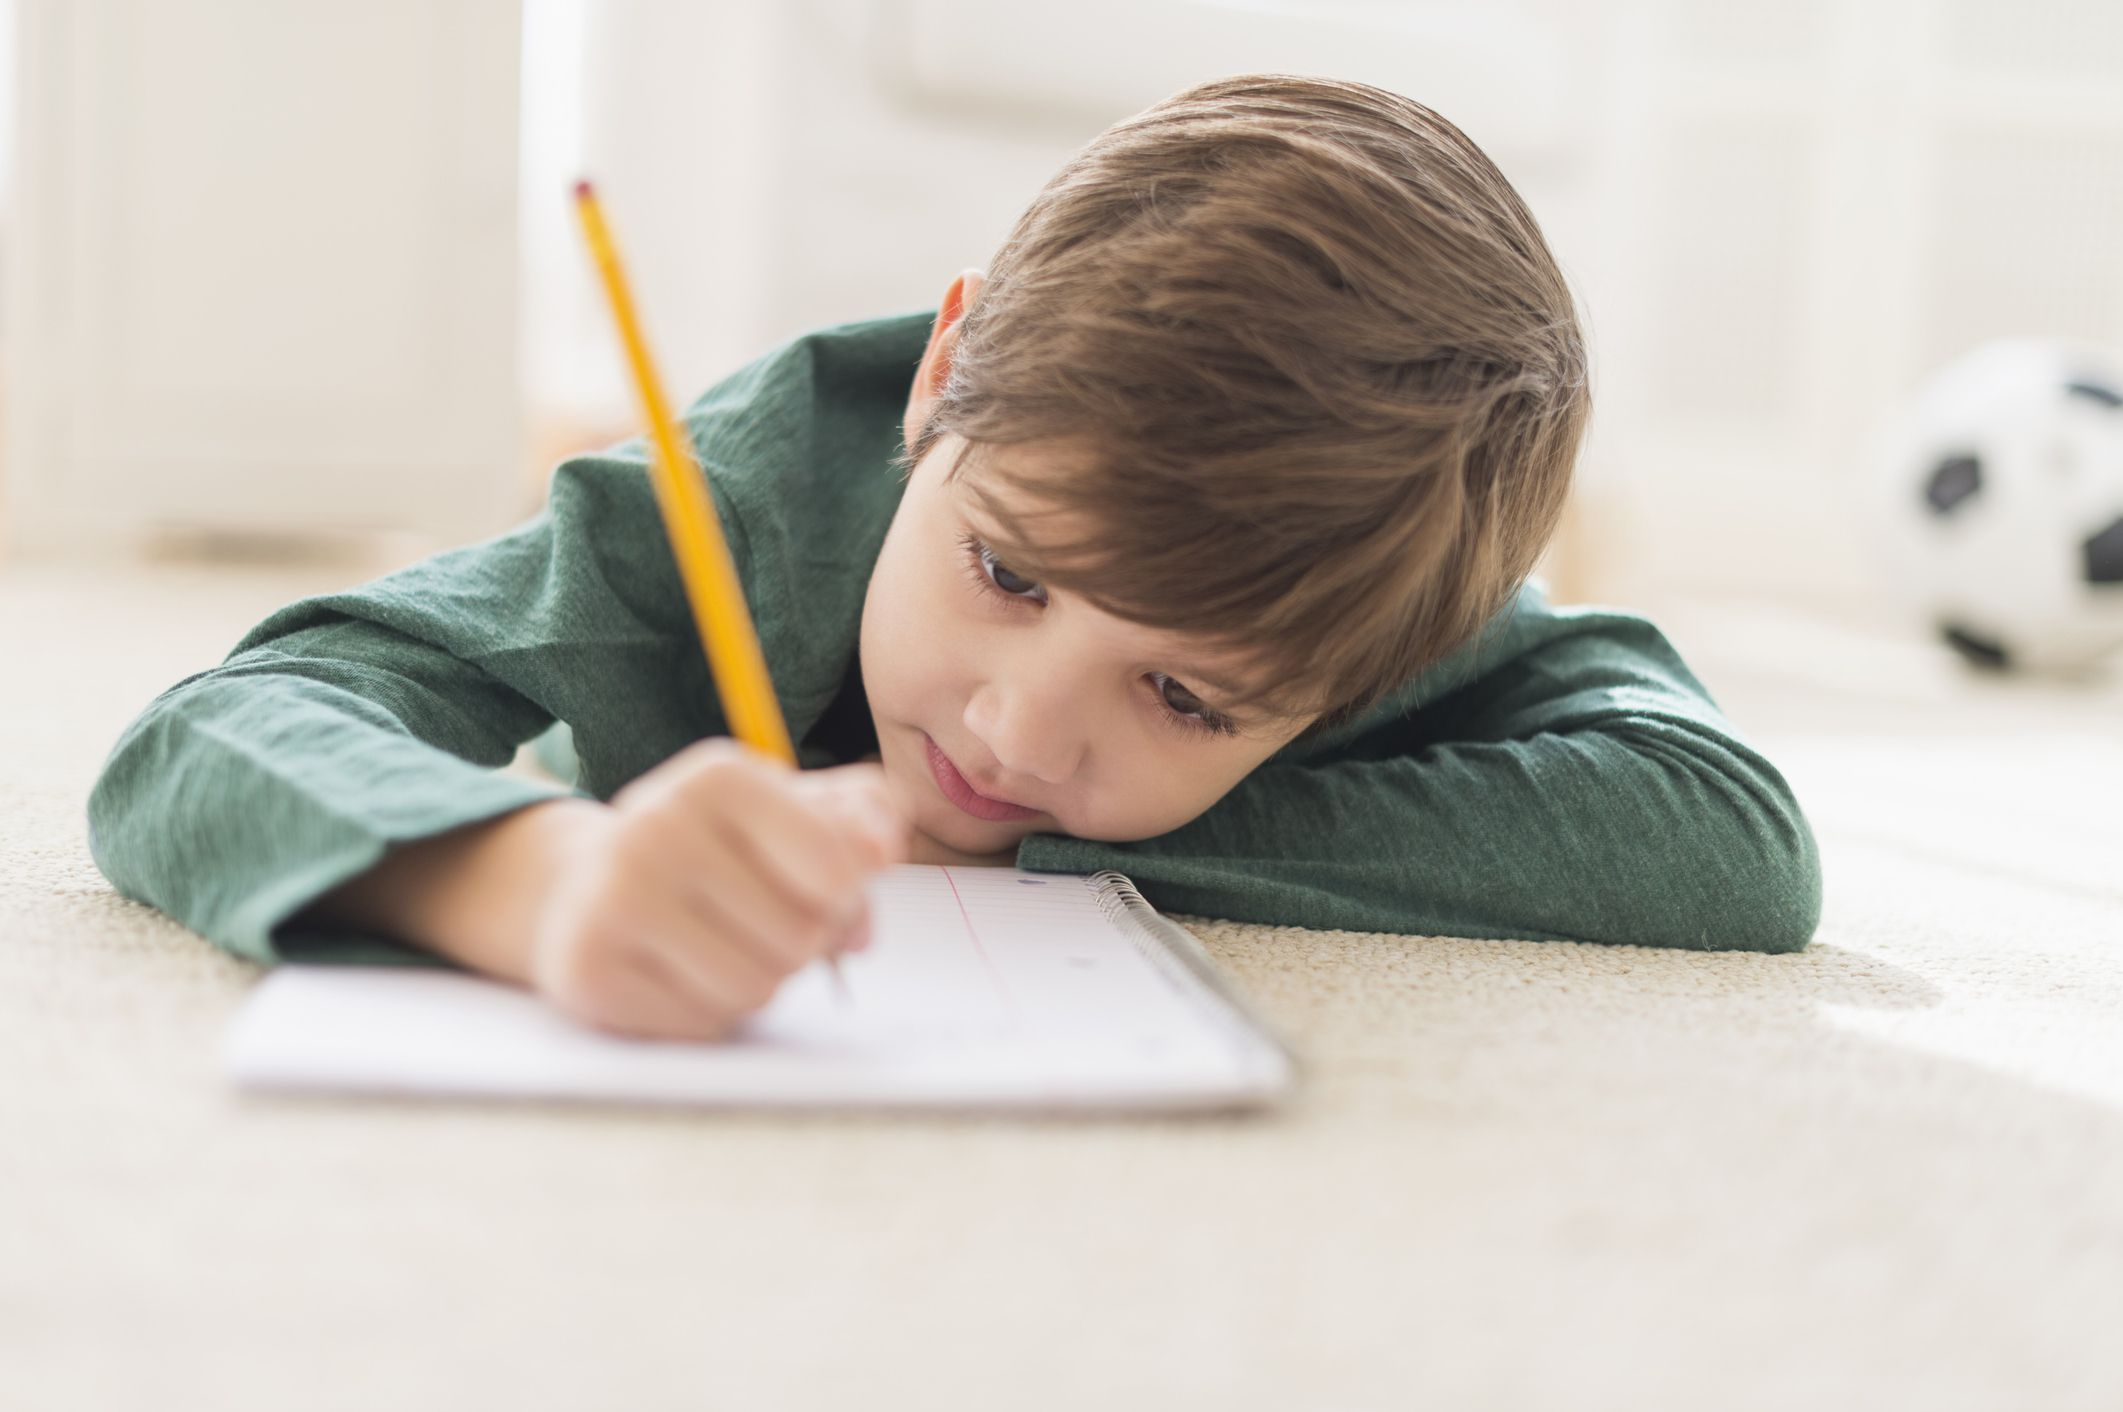 childrens creative writing A good creative writing camp is often offered in conjunction with other arts such as theater, dance and so onsummer writing camps are usually geared toward slightly older children, usually those who are in their teens.